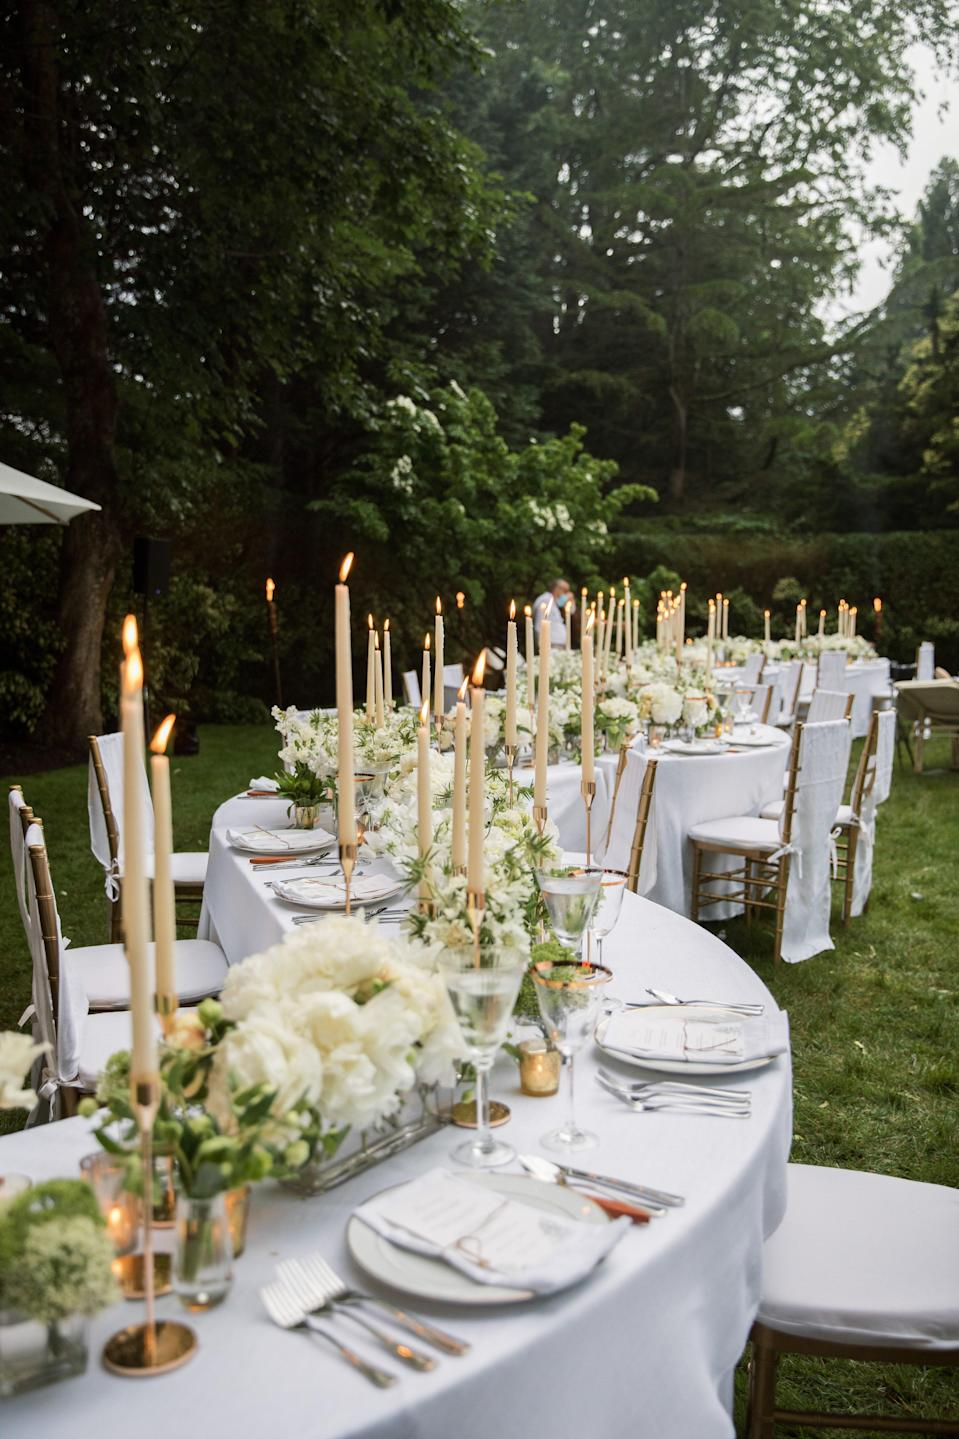 The 70-foot serpentine tablescape Fete designed was so unique and beautiful. The flowers on the table included gorgeous peonies, lilac, lisianthus, ranunculus, scabiosa, and French tulips. Truly perfection.